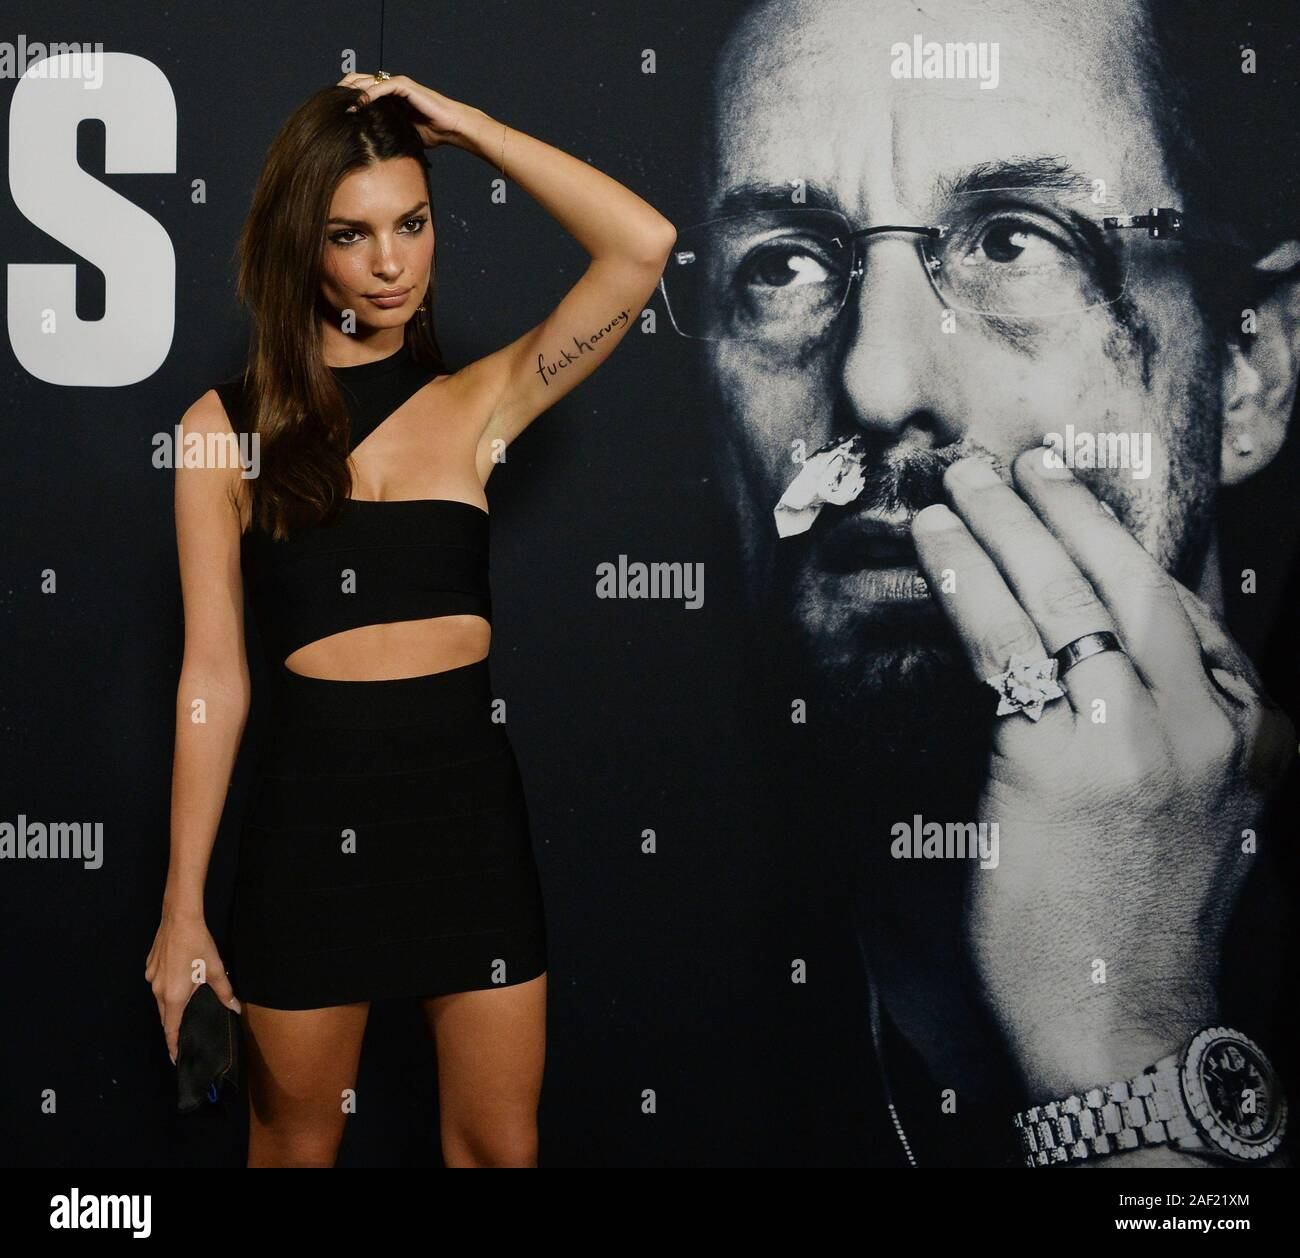 """Hollywood, California, USA. 12th Dec, 2019. Emily Ratajkowski attends the premiere of the motion picture crime thriller """"Uncut Gems"""" at the ArcLight Cinema Dome in the Hollywood section of Los Angeles on Wednesday, December 11, 2019. Storyline: Howard Ratner (Adam Sandler), a charismatic New York City jeweler always on the lookout for the next big score. Credit: UPI/Alamy Live News Stock Photo"""